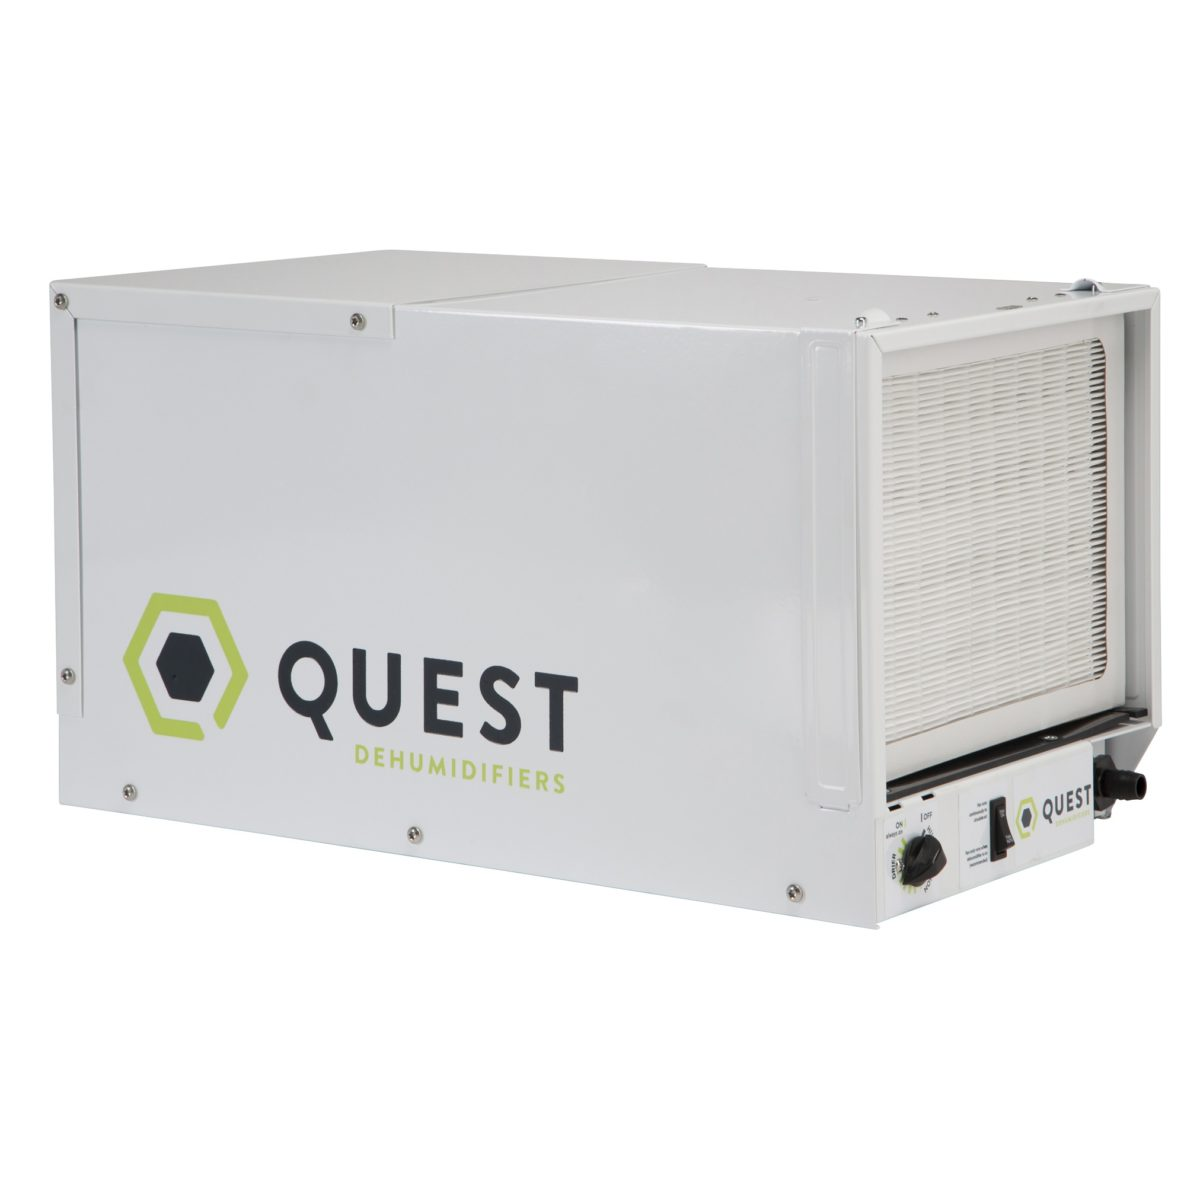 Quest Dehumidifier – 70 Pint